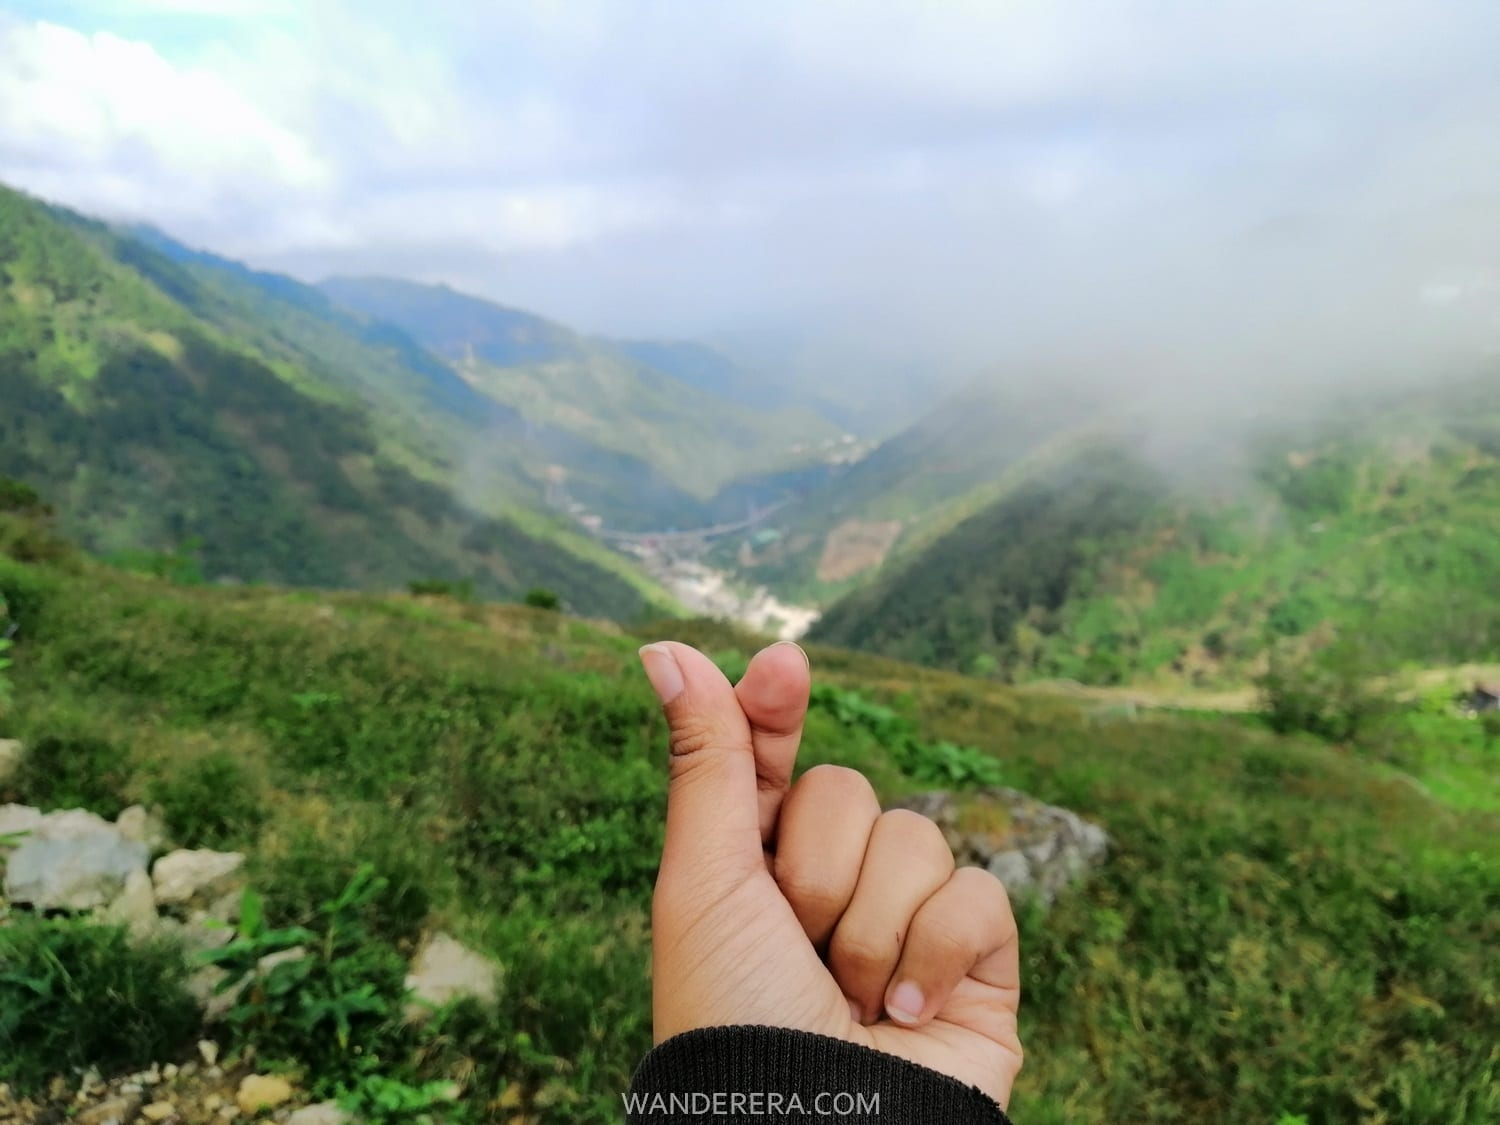 Valleypoint Campsite Tuba, Benguet: Camping In The Sky